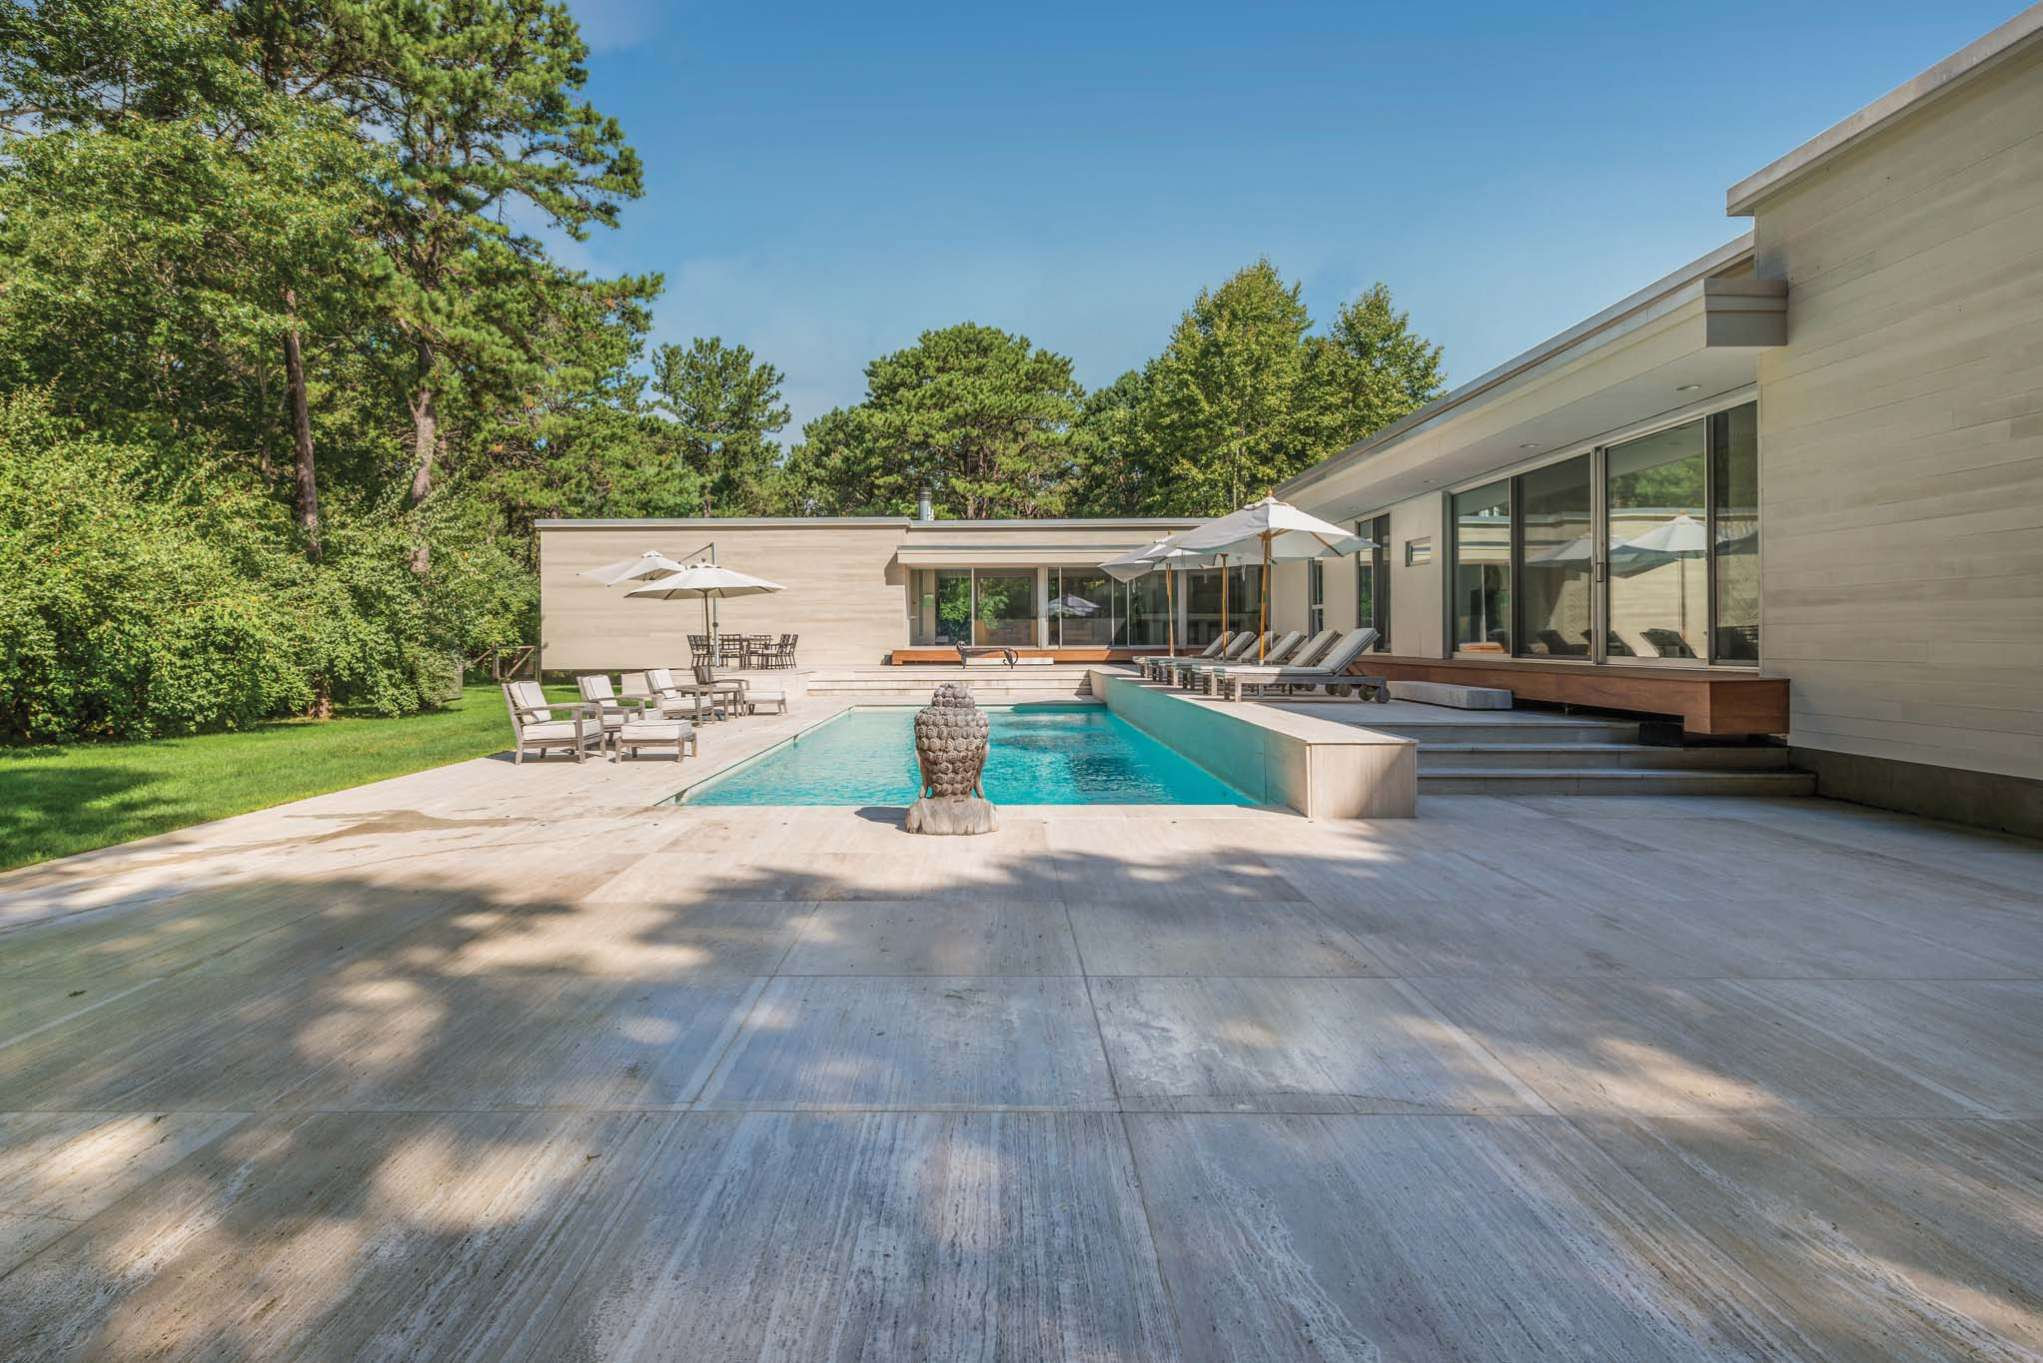 Single Family Home for Sale at Live In Your Art A Modern Masterpiece In Sagaponack 25 Forest Crossing, Sagaponack, New York